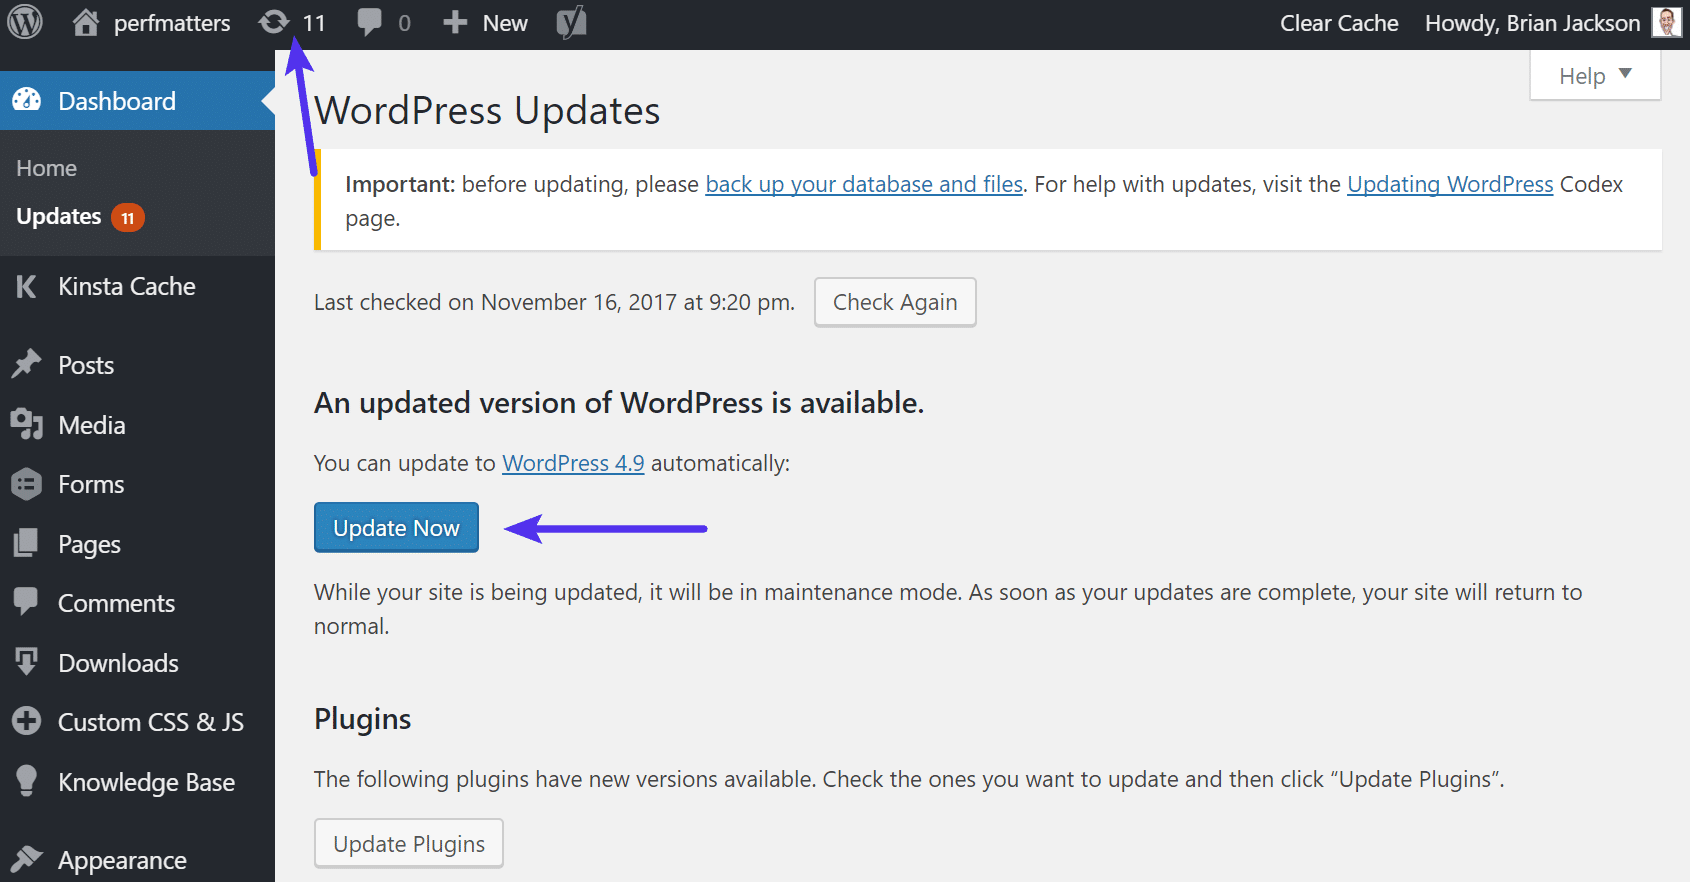 Update to WordPress 4.9